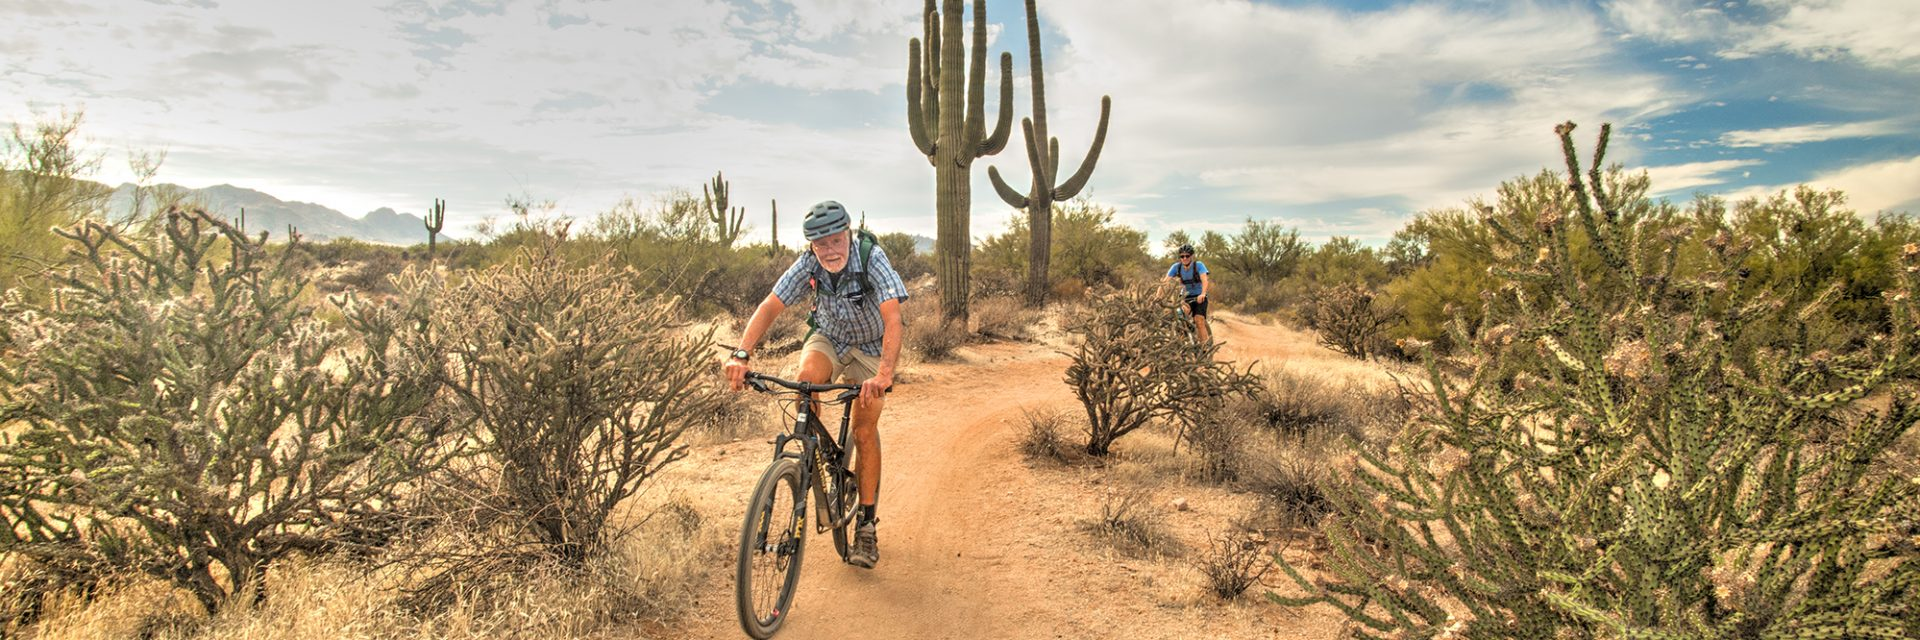 Pemberton Trail, McDowell Mountain Park, Arizona's Sonoran Desert guided mtb tour near Phoenix, AZ